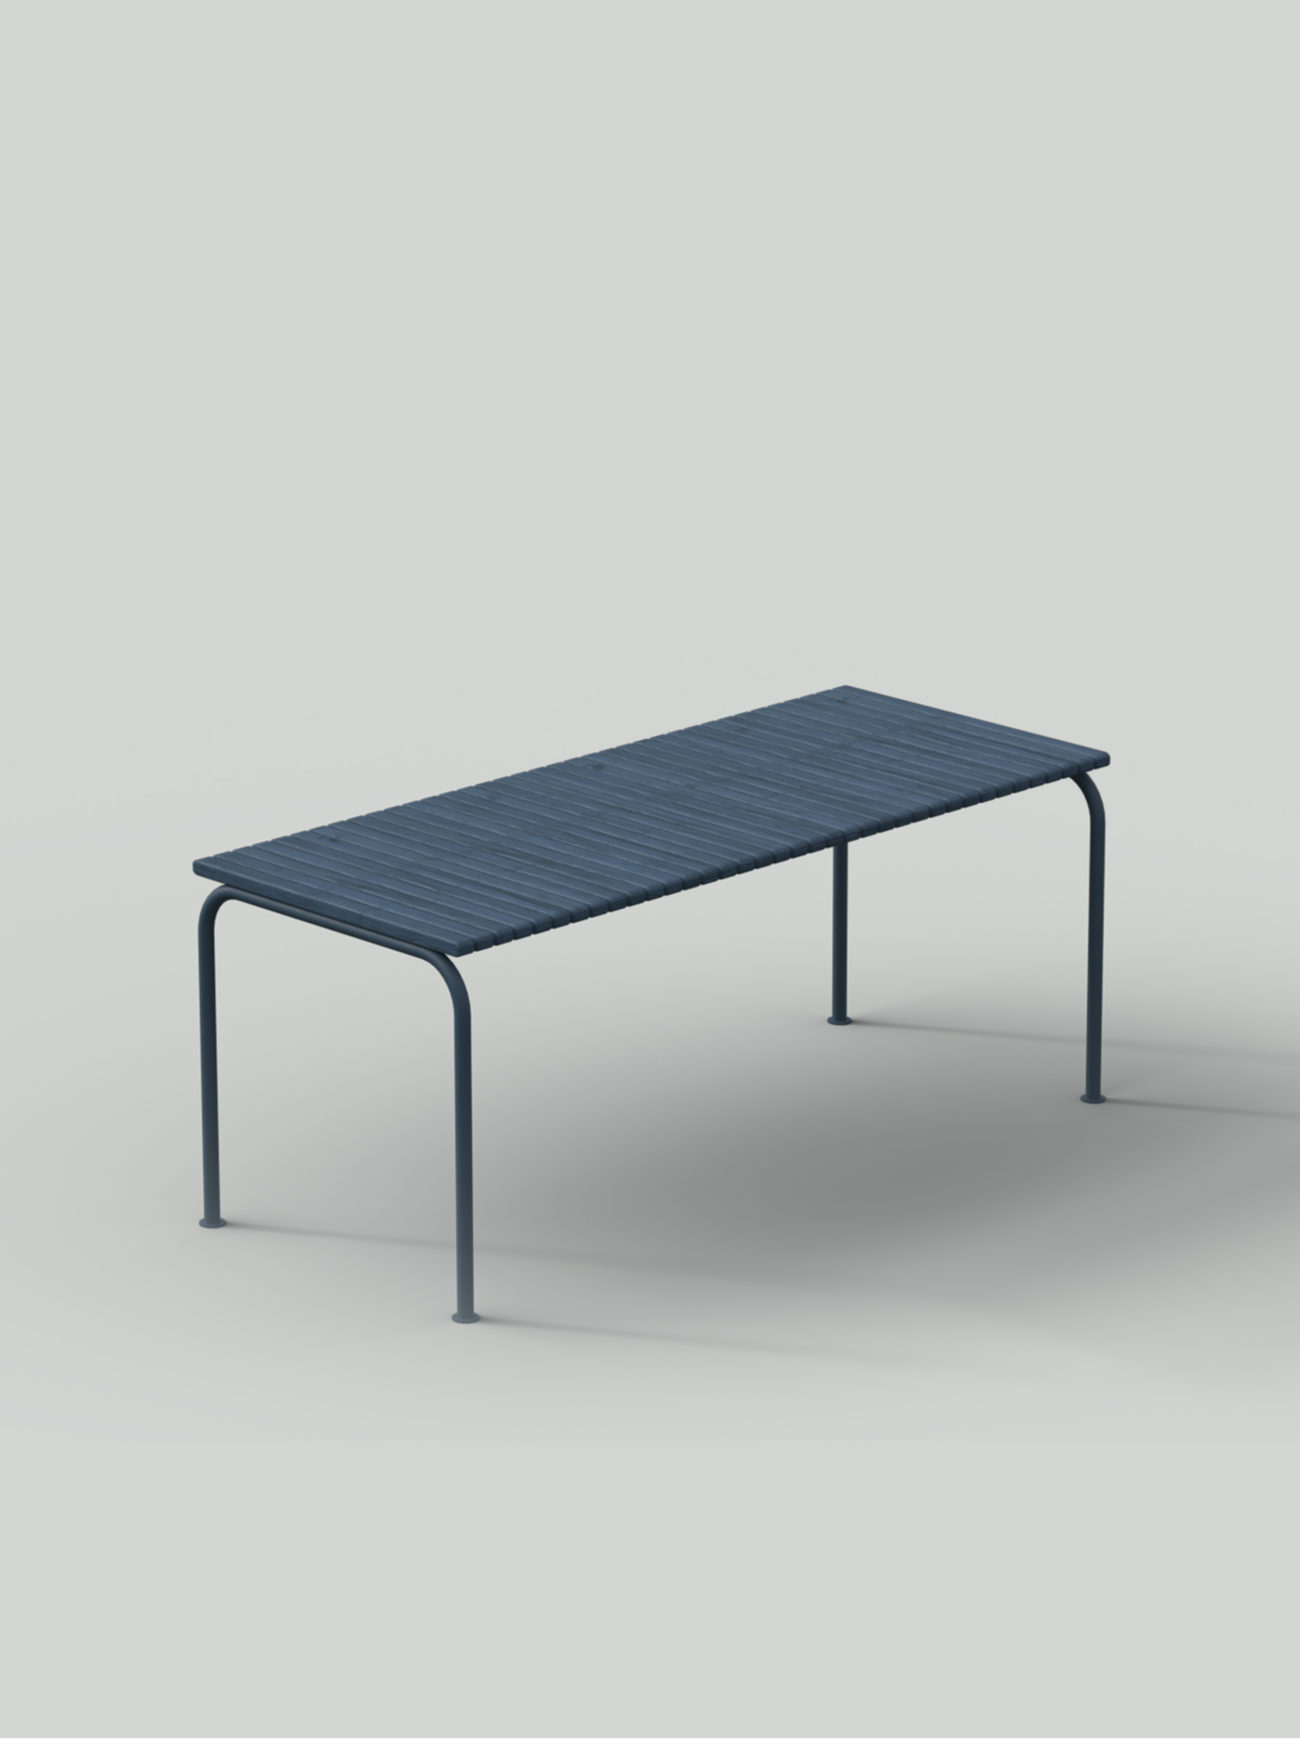 Blue table with steel frame and wood planks